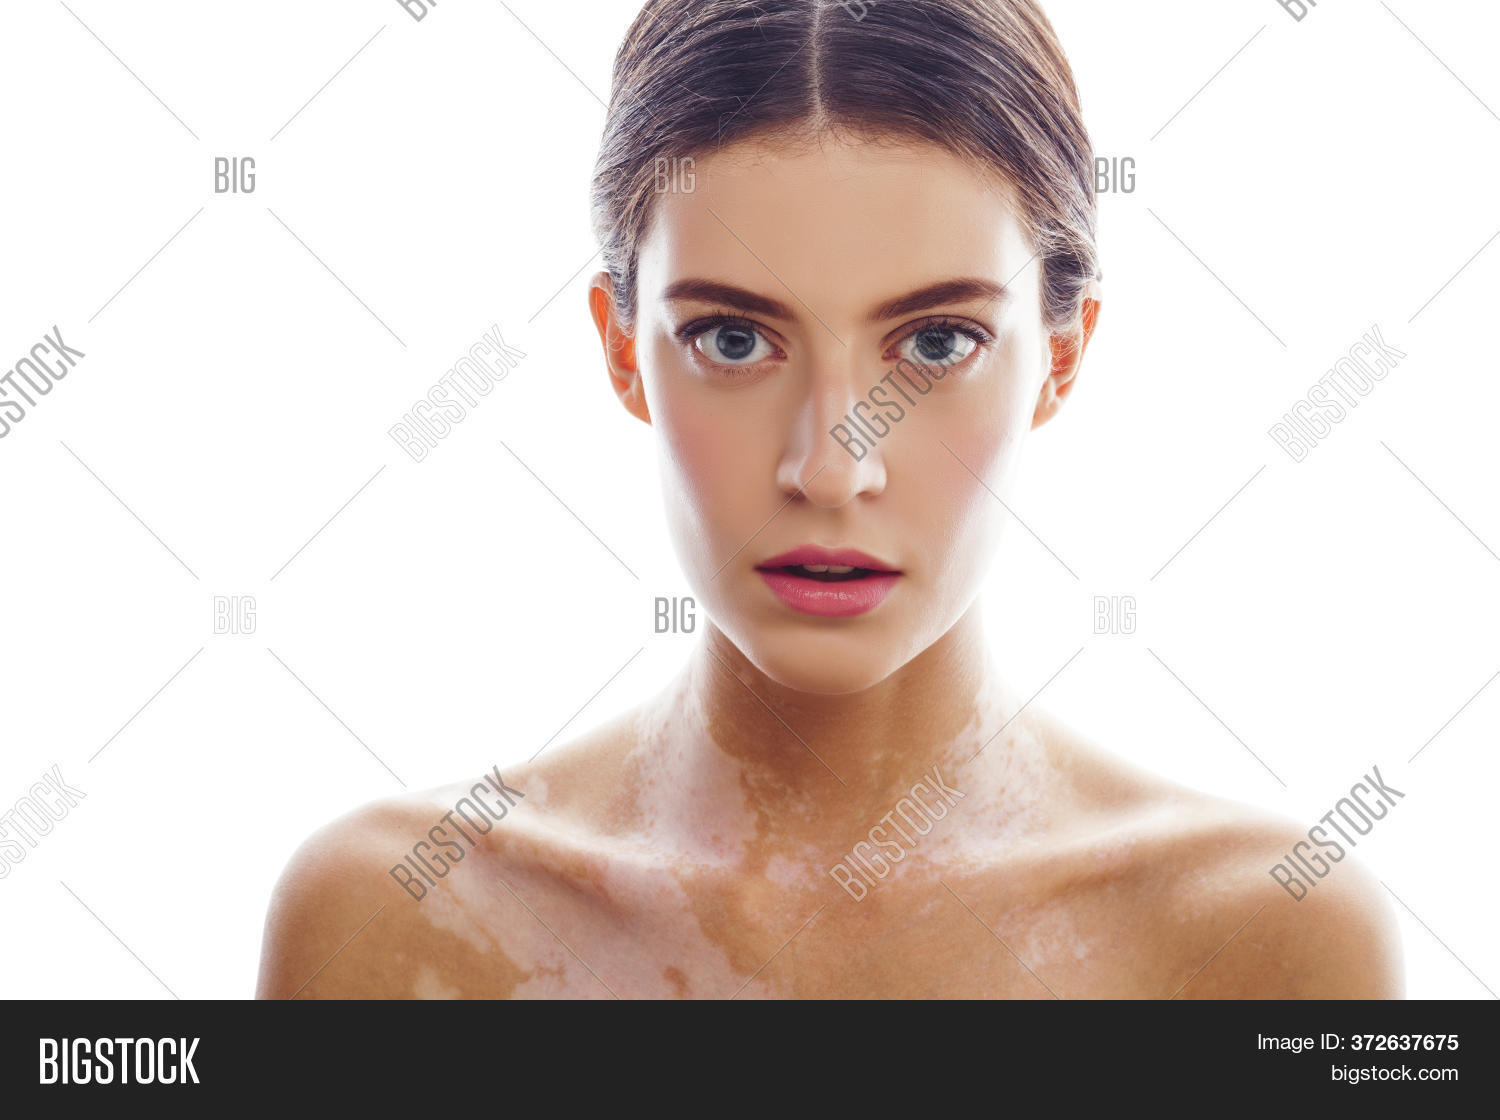 Beautiful Young Image Photo Free Trial Bigstock